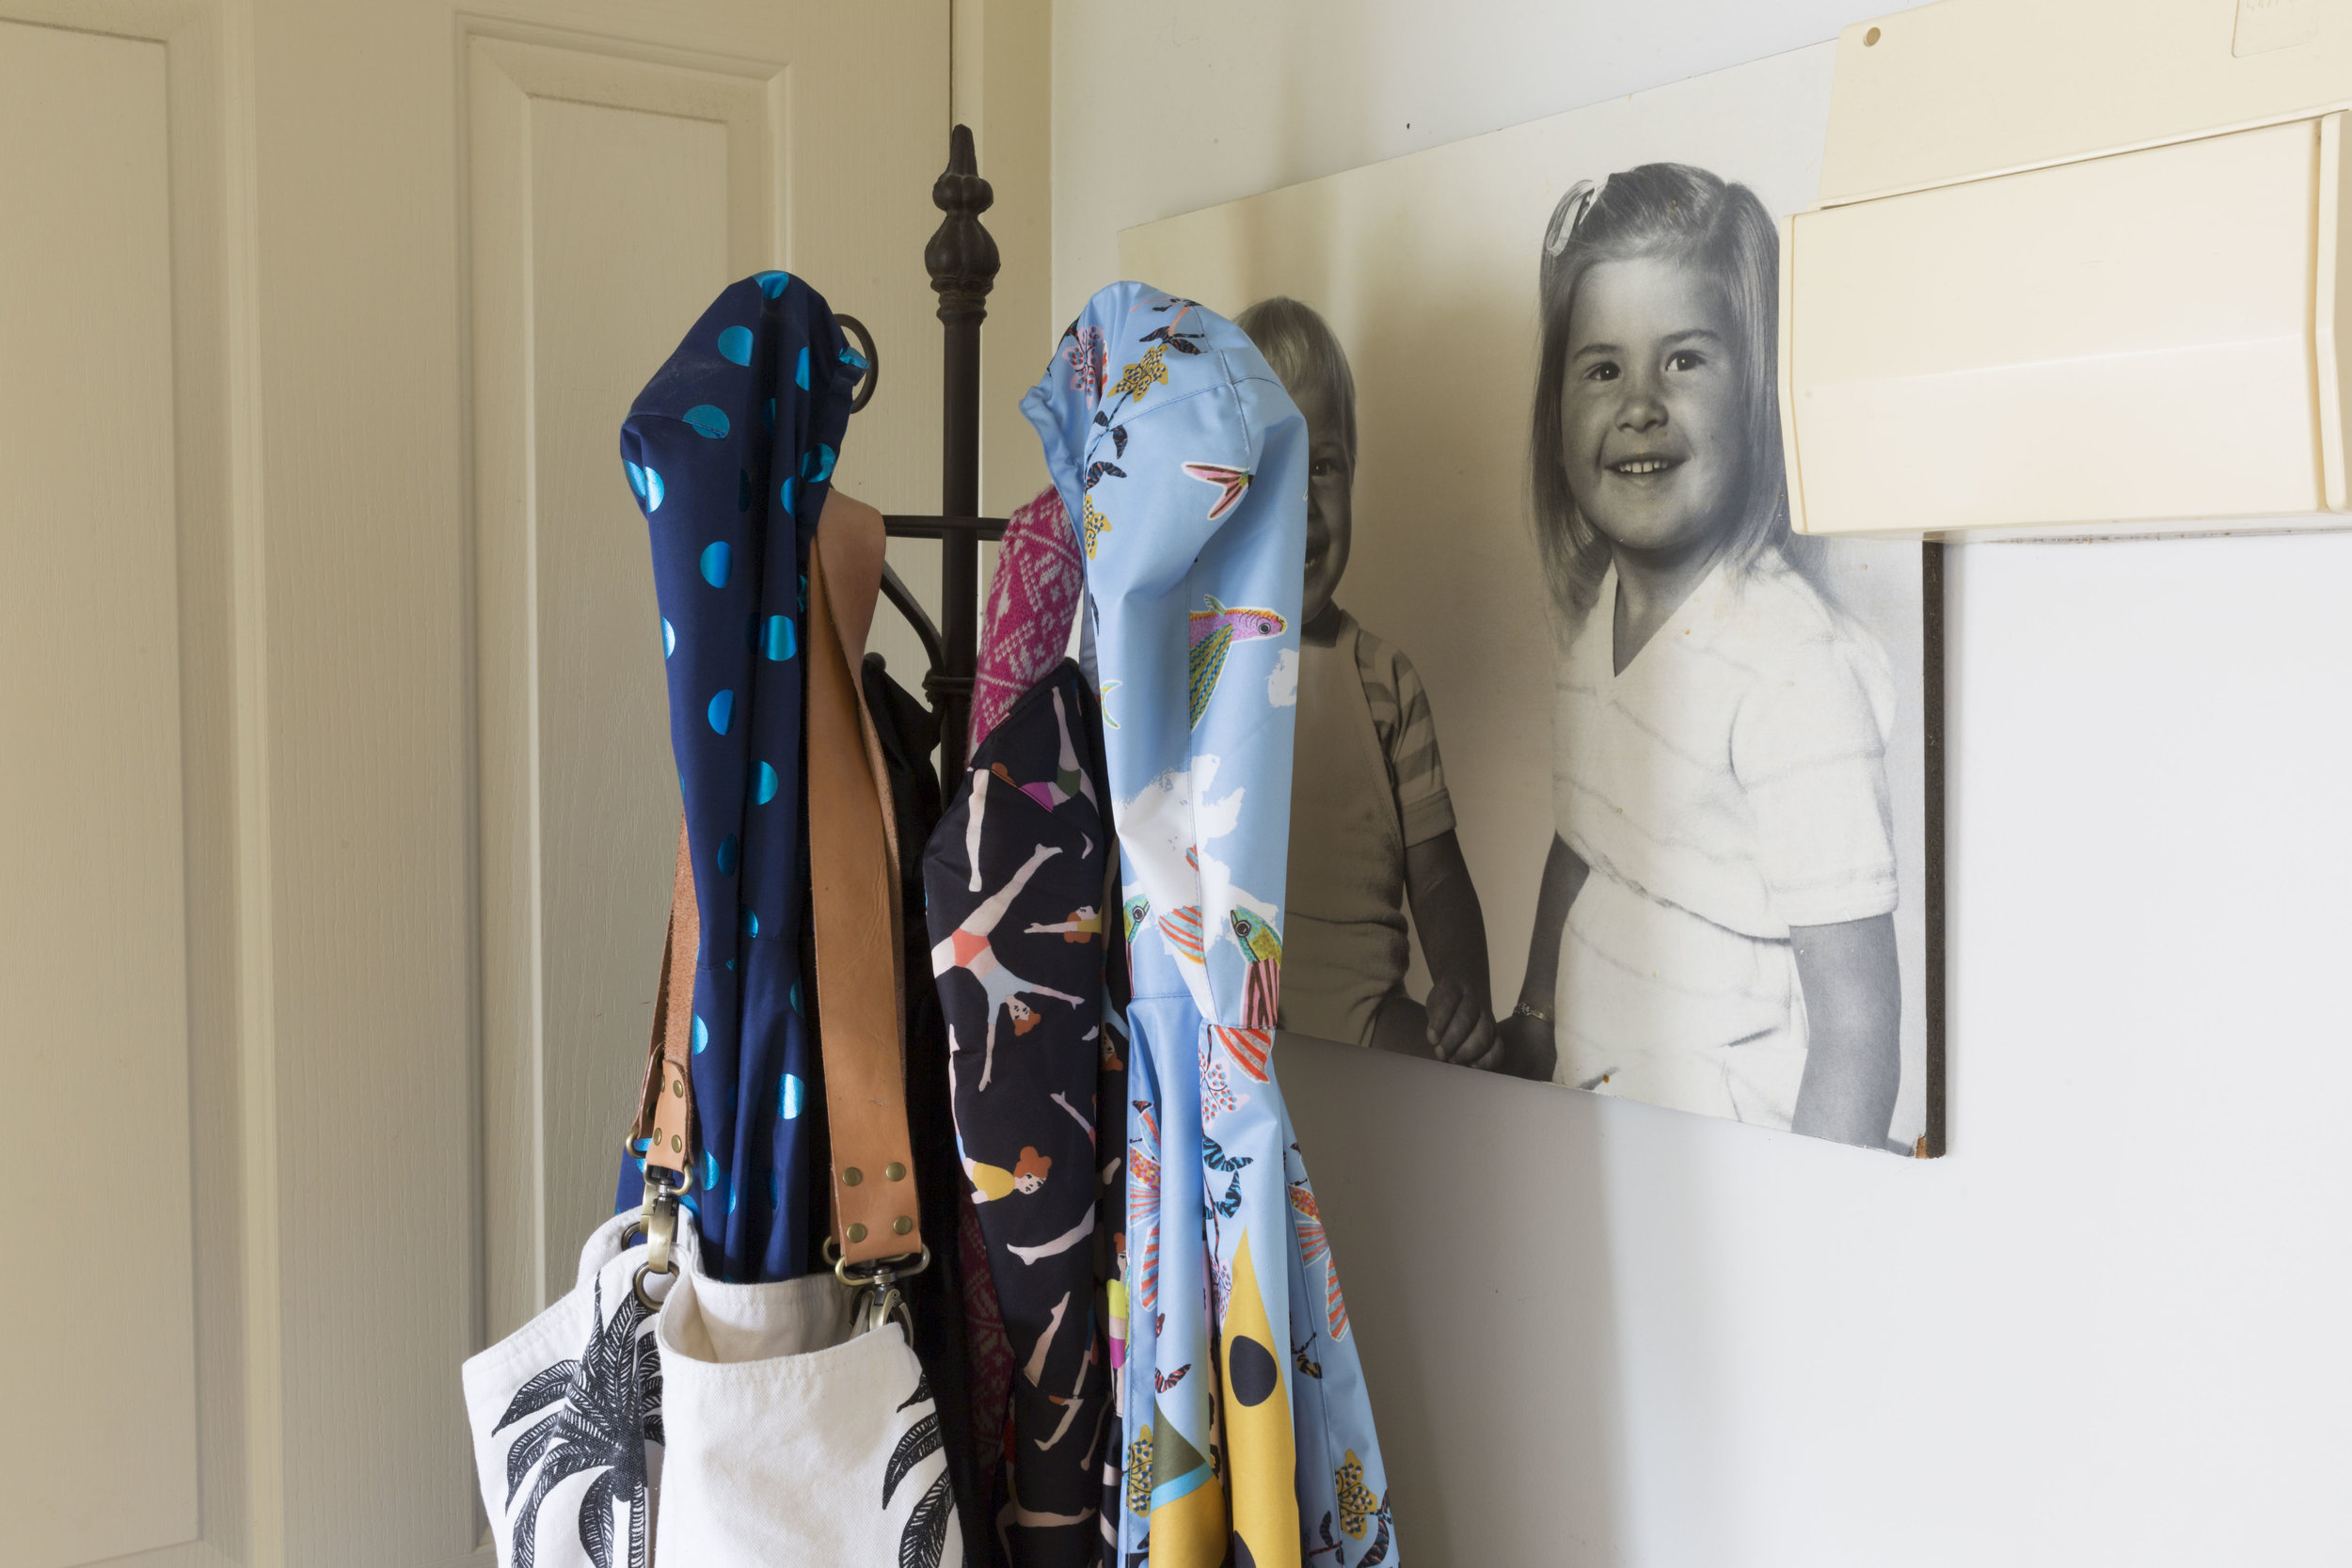 Justine Savage - Rented Space. Gorman raincoats and family photo.